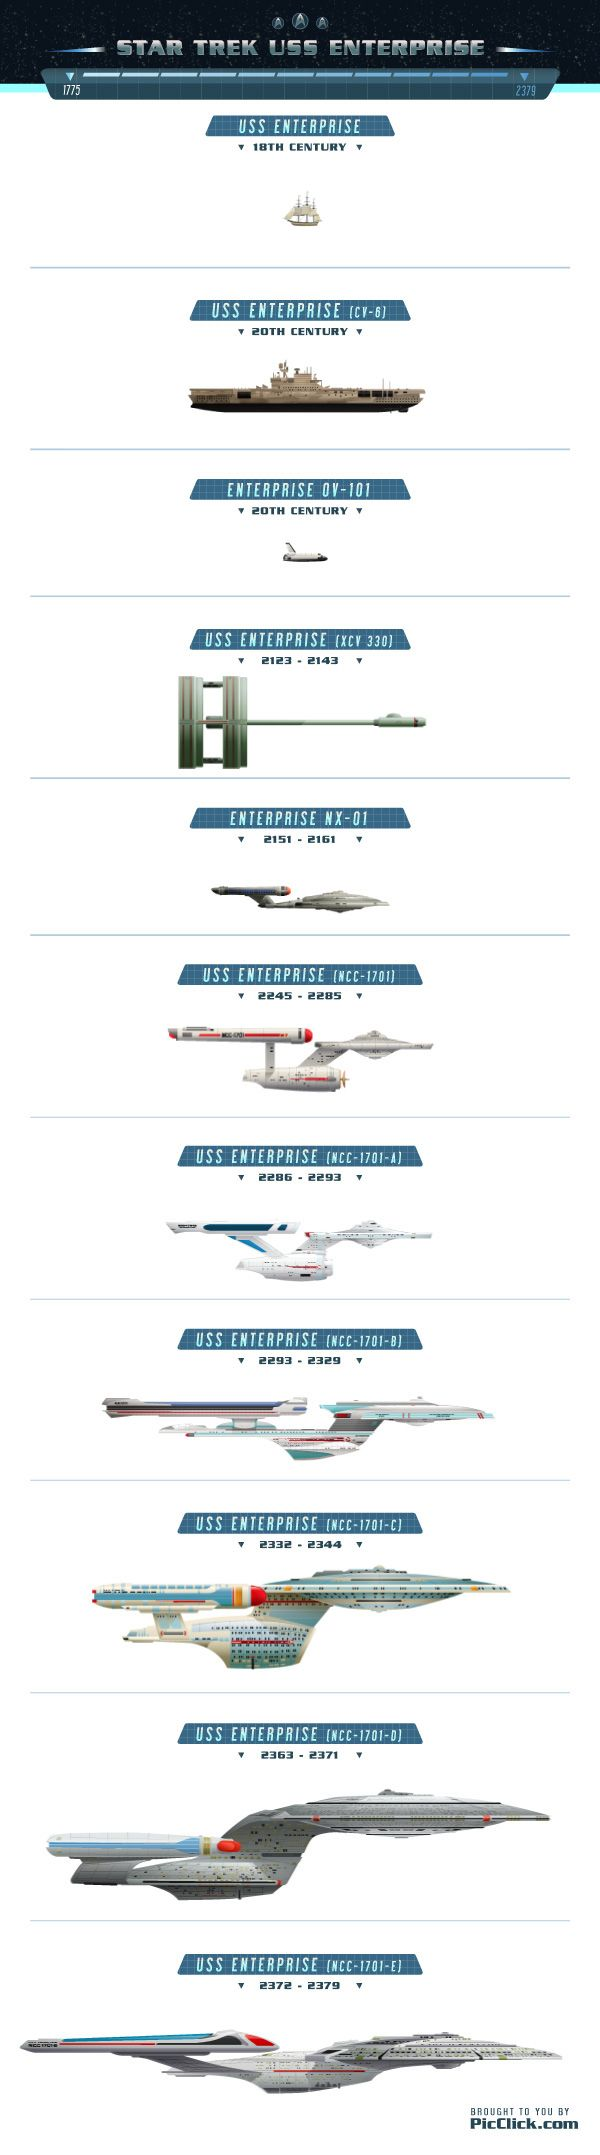 Star Trek USS Enterprise Morphed [video] #infographic #StarTrek